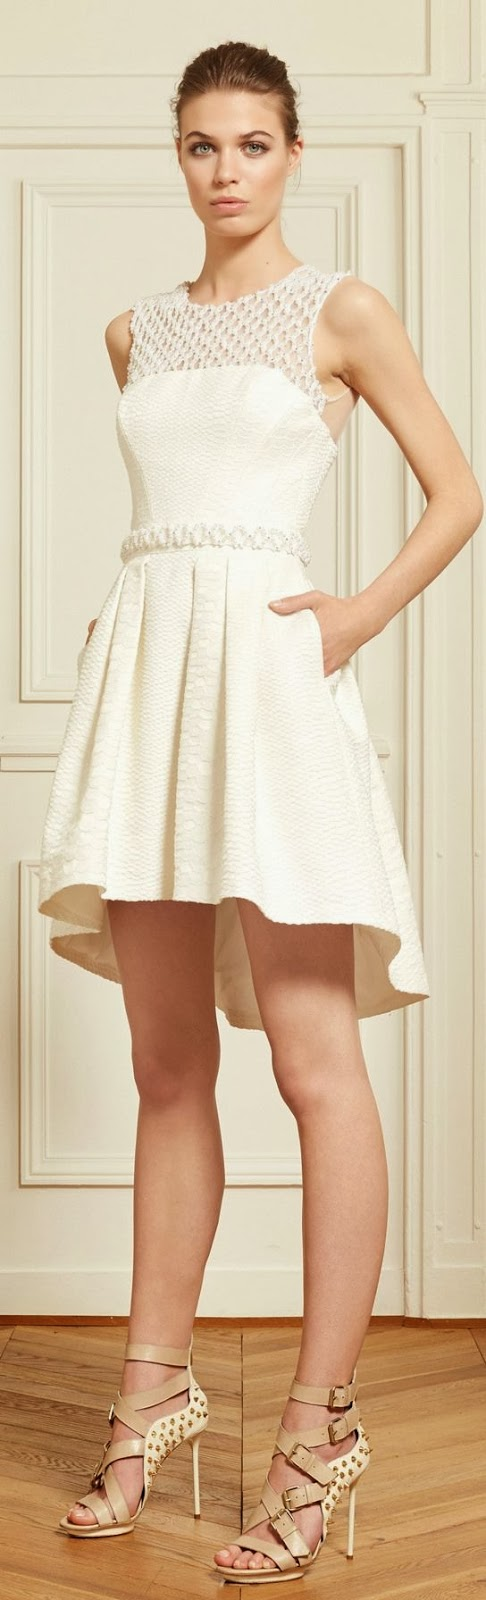 Stunning White Party Dress